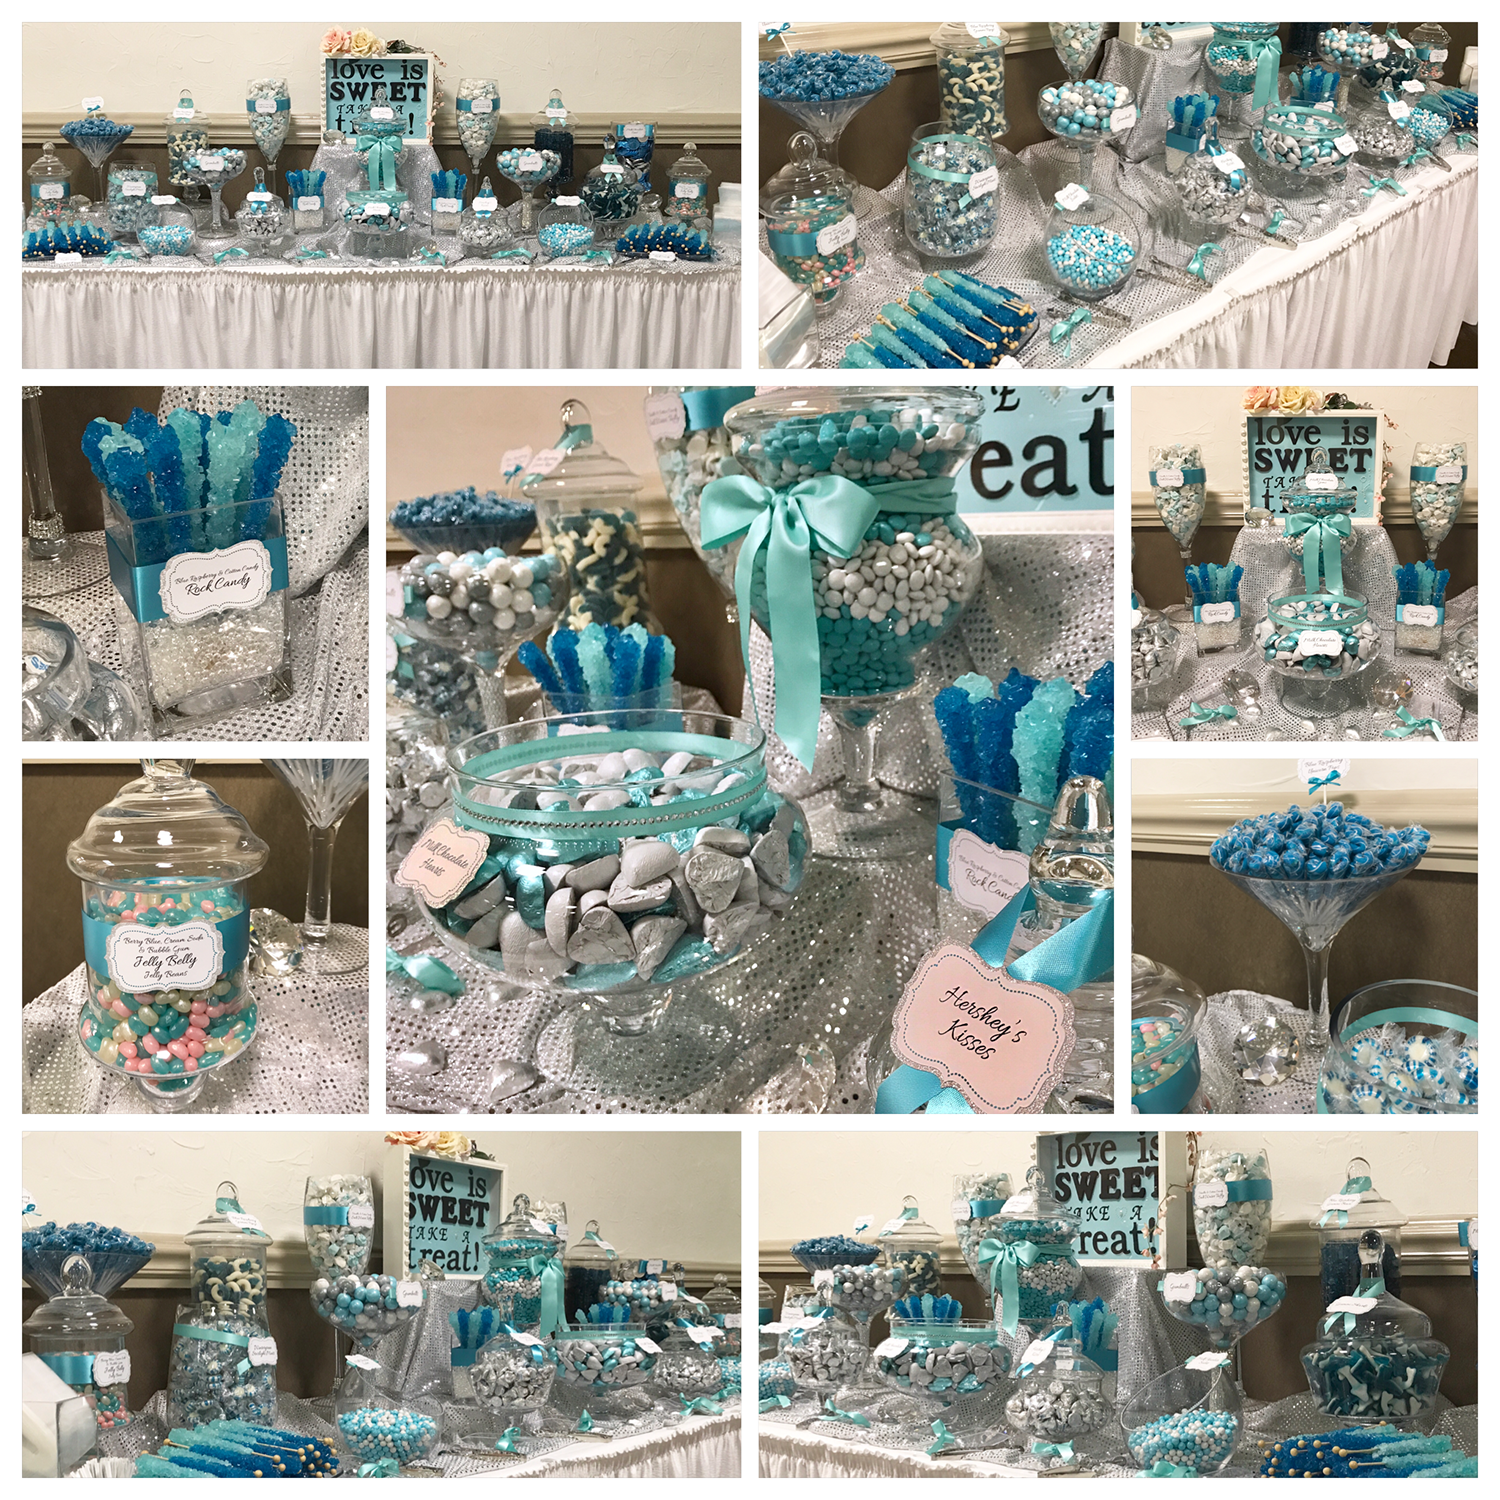 30e76d4c6ba Candy Buffet Gallery of Displays for Weddings, Parties, and Events ...